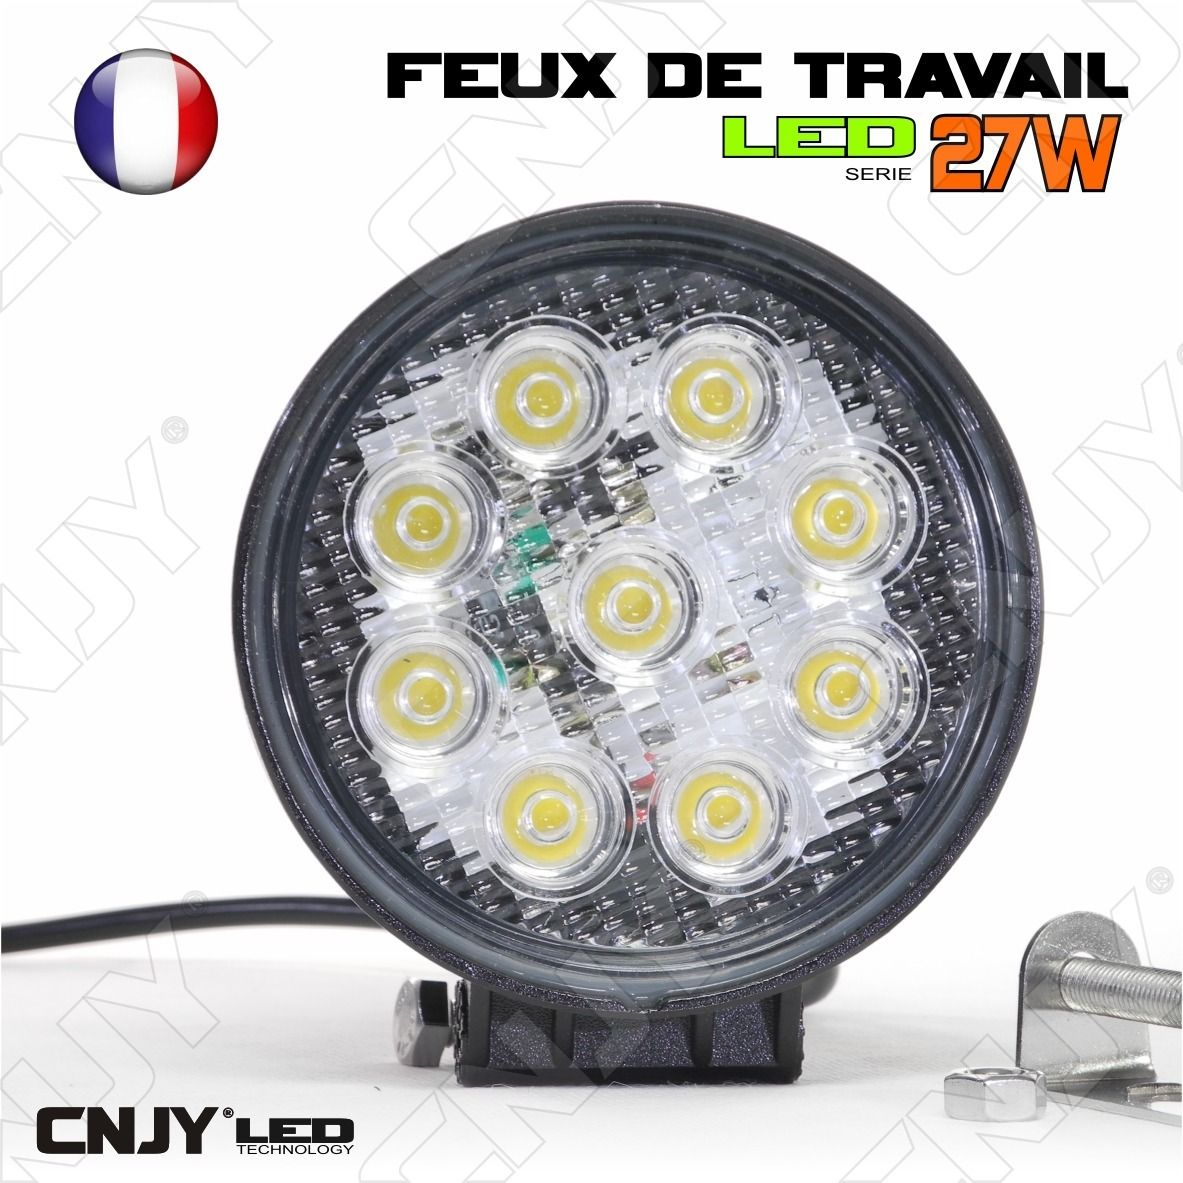 feux de travail cnjy led 27w rond working light ip67 camion bateau 4x4 12 24v 26 95 chez. Black Bedroom Furniture Sets. Home Design Ideas